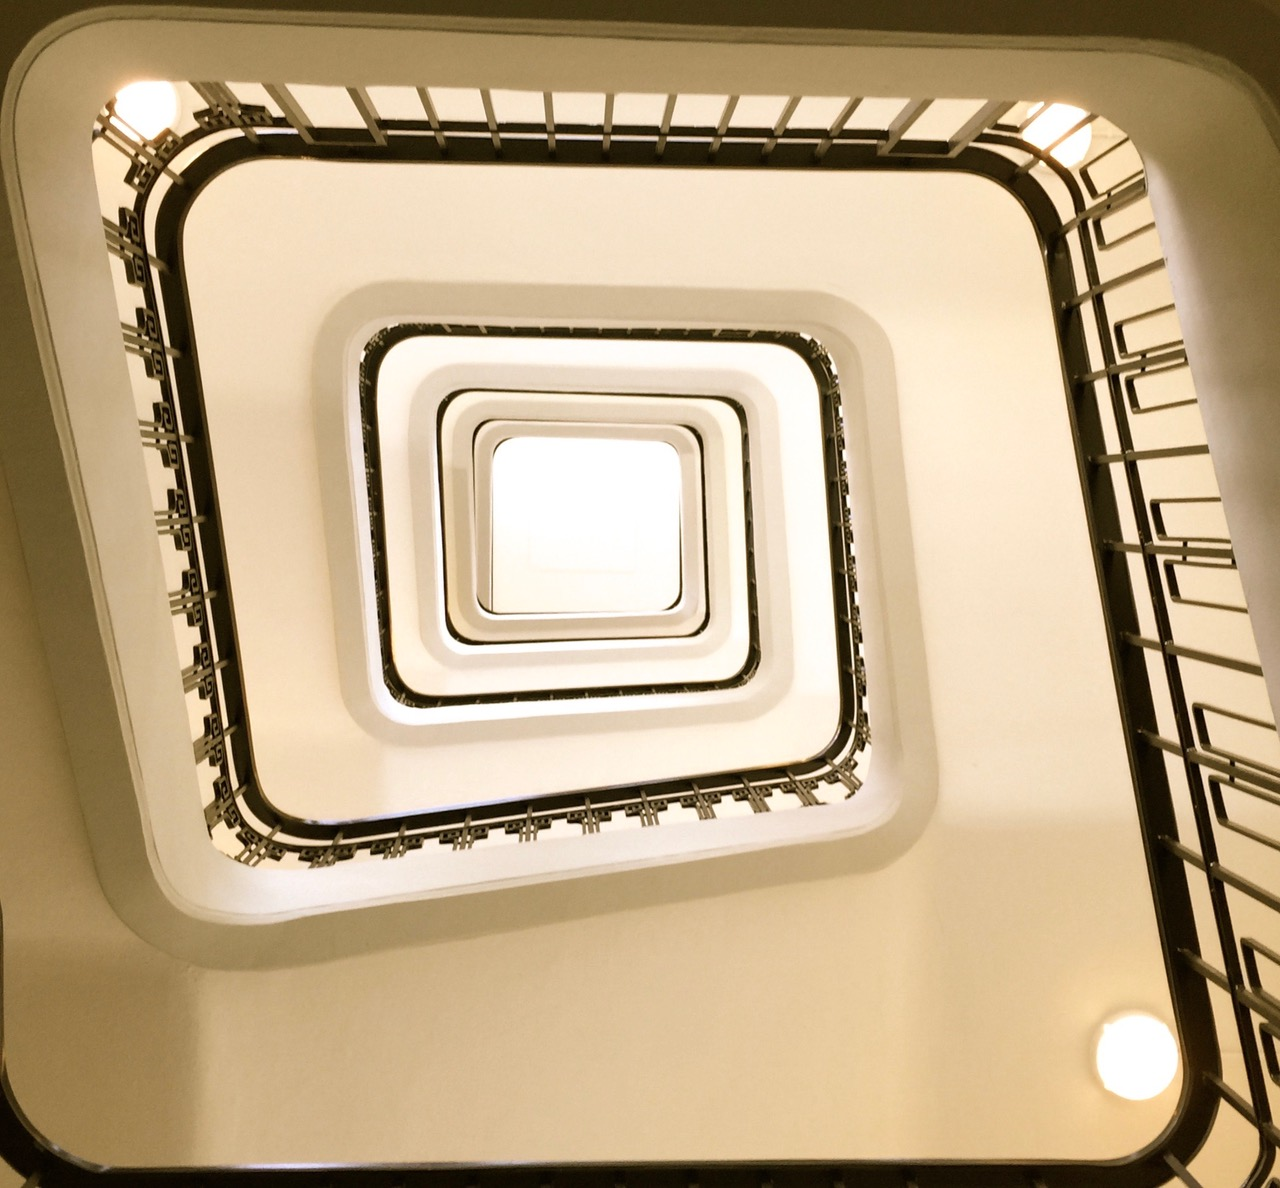 The staircase in the Hirsch Building on Leidseplein